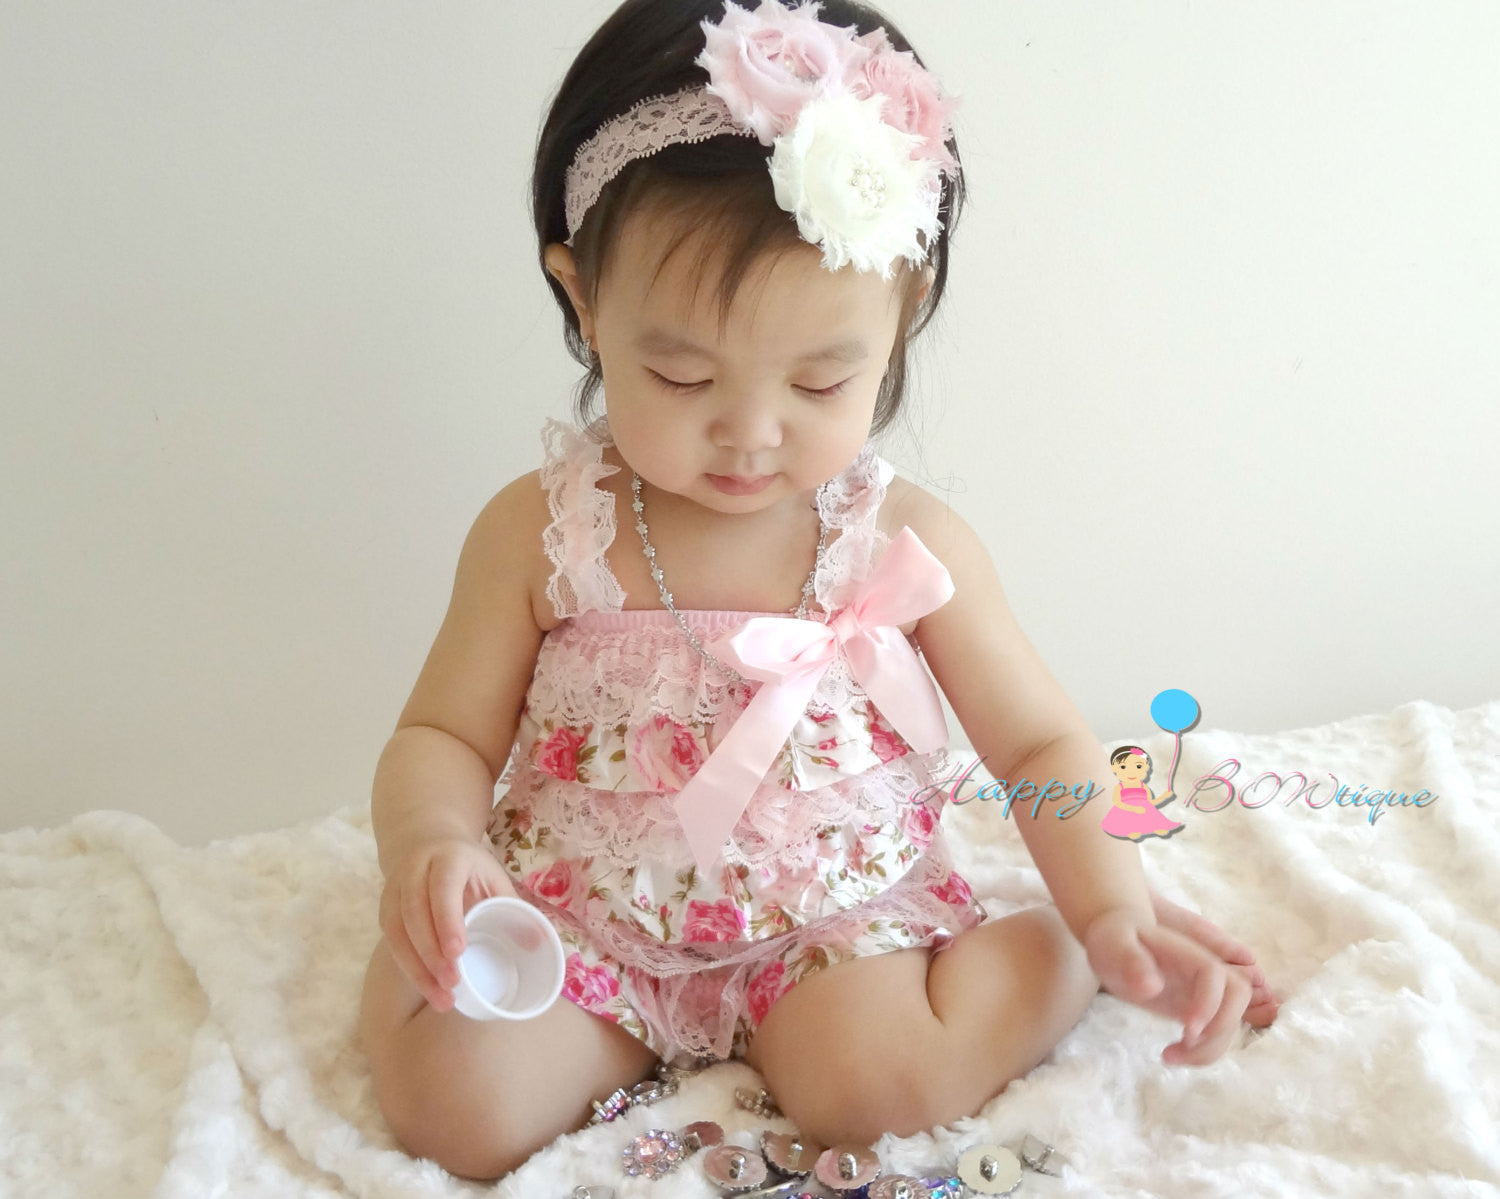 Baby Girl Vintage Roses Lace Romper set/ Baby Petti Lace Romper - Happy BOWtique - children's clothing, Baby Girl clothing